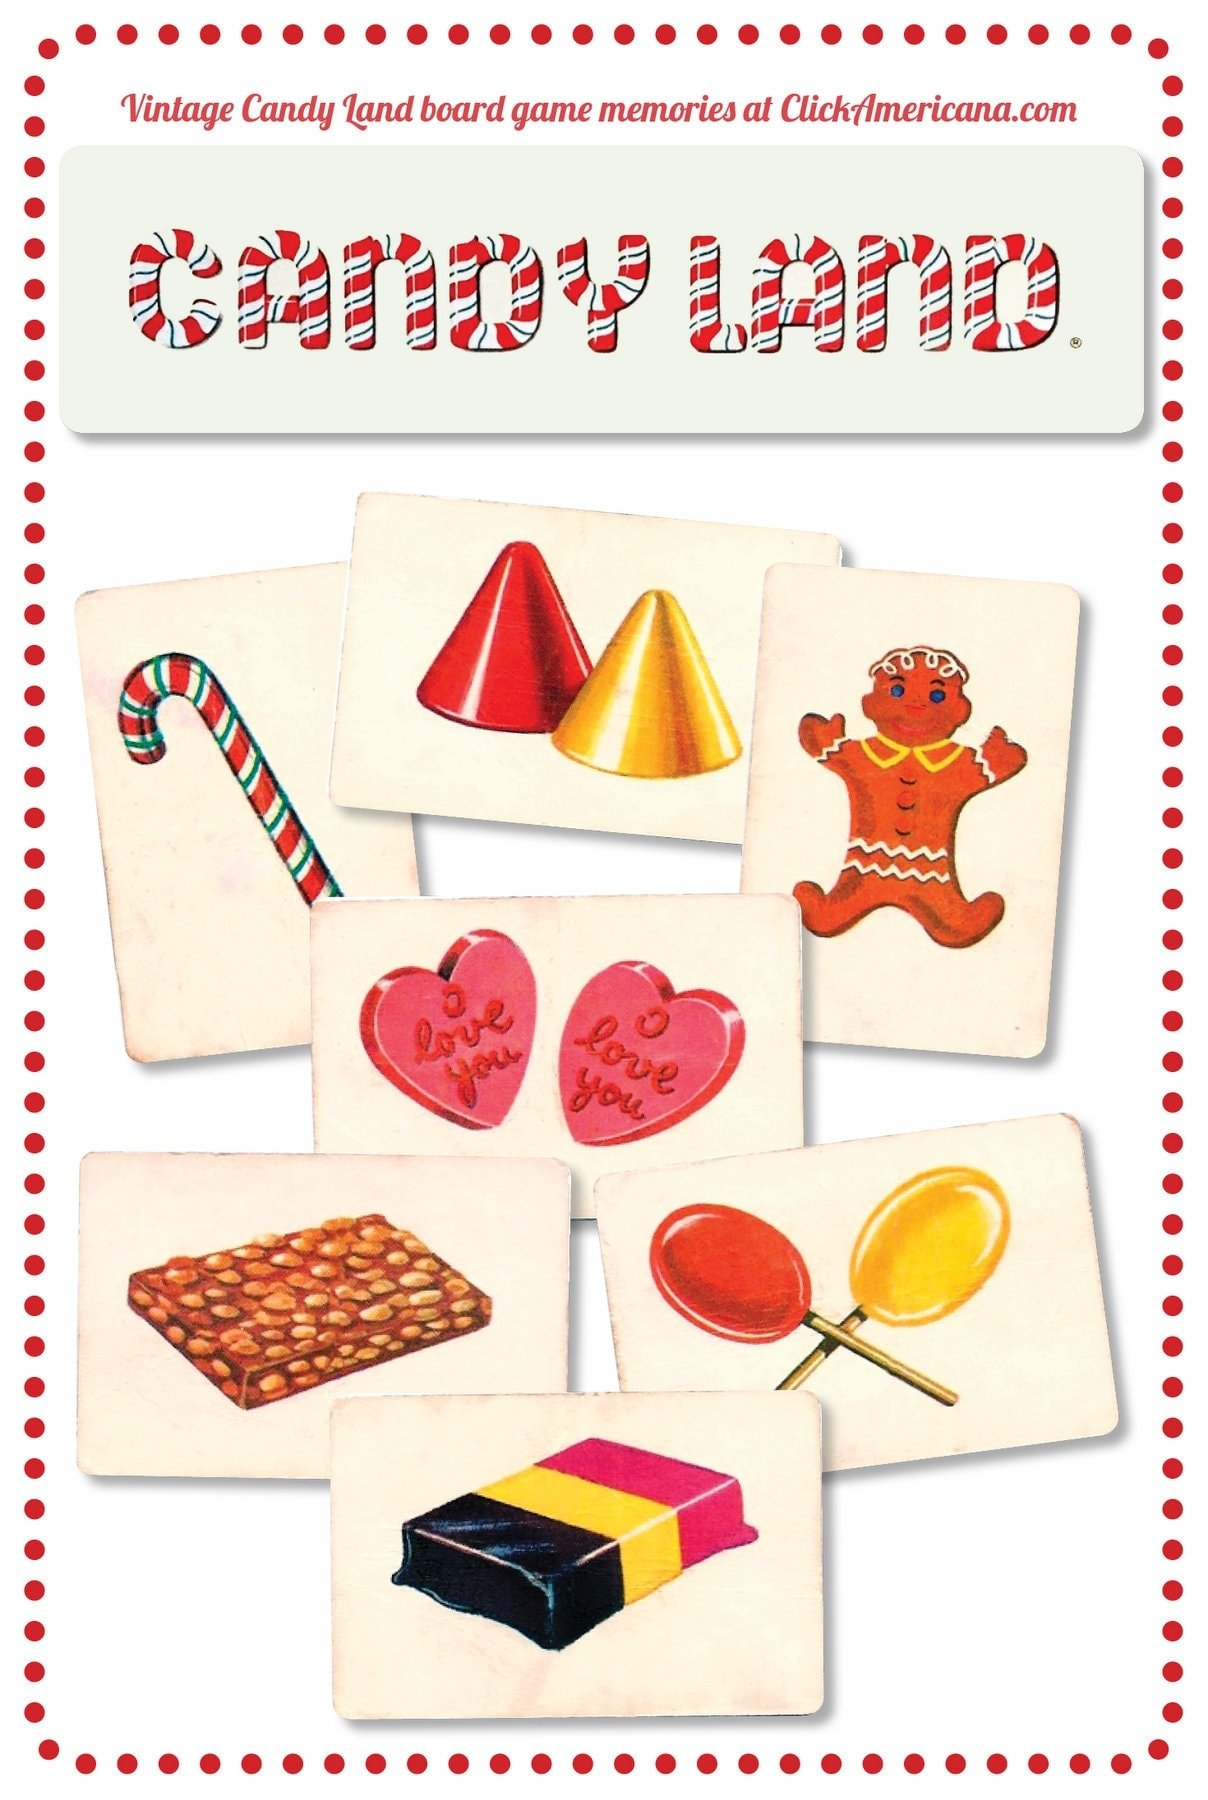 Vintage Candy Land board game cards